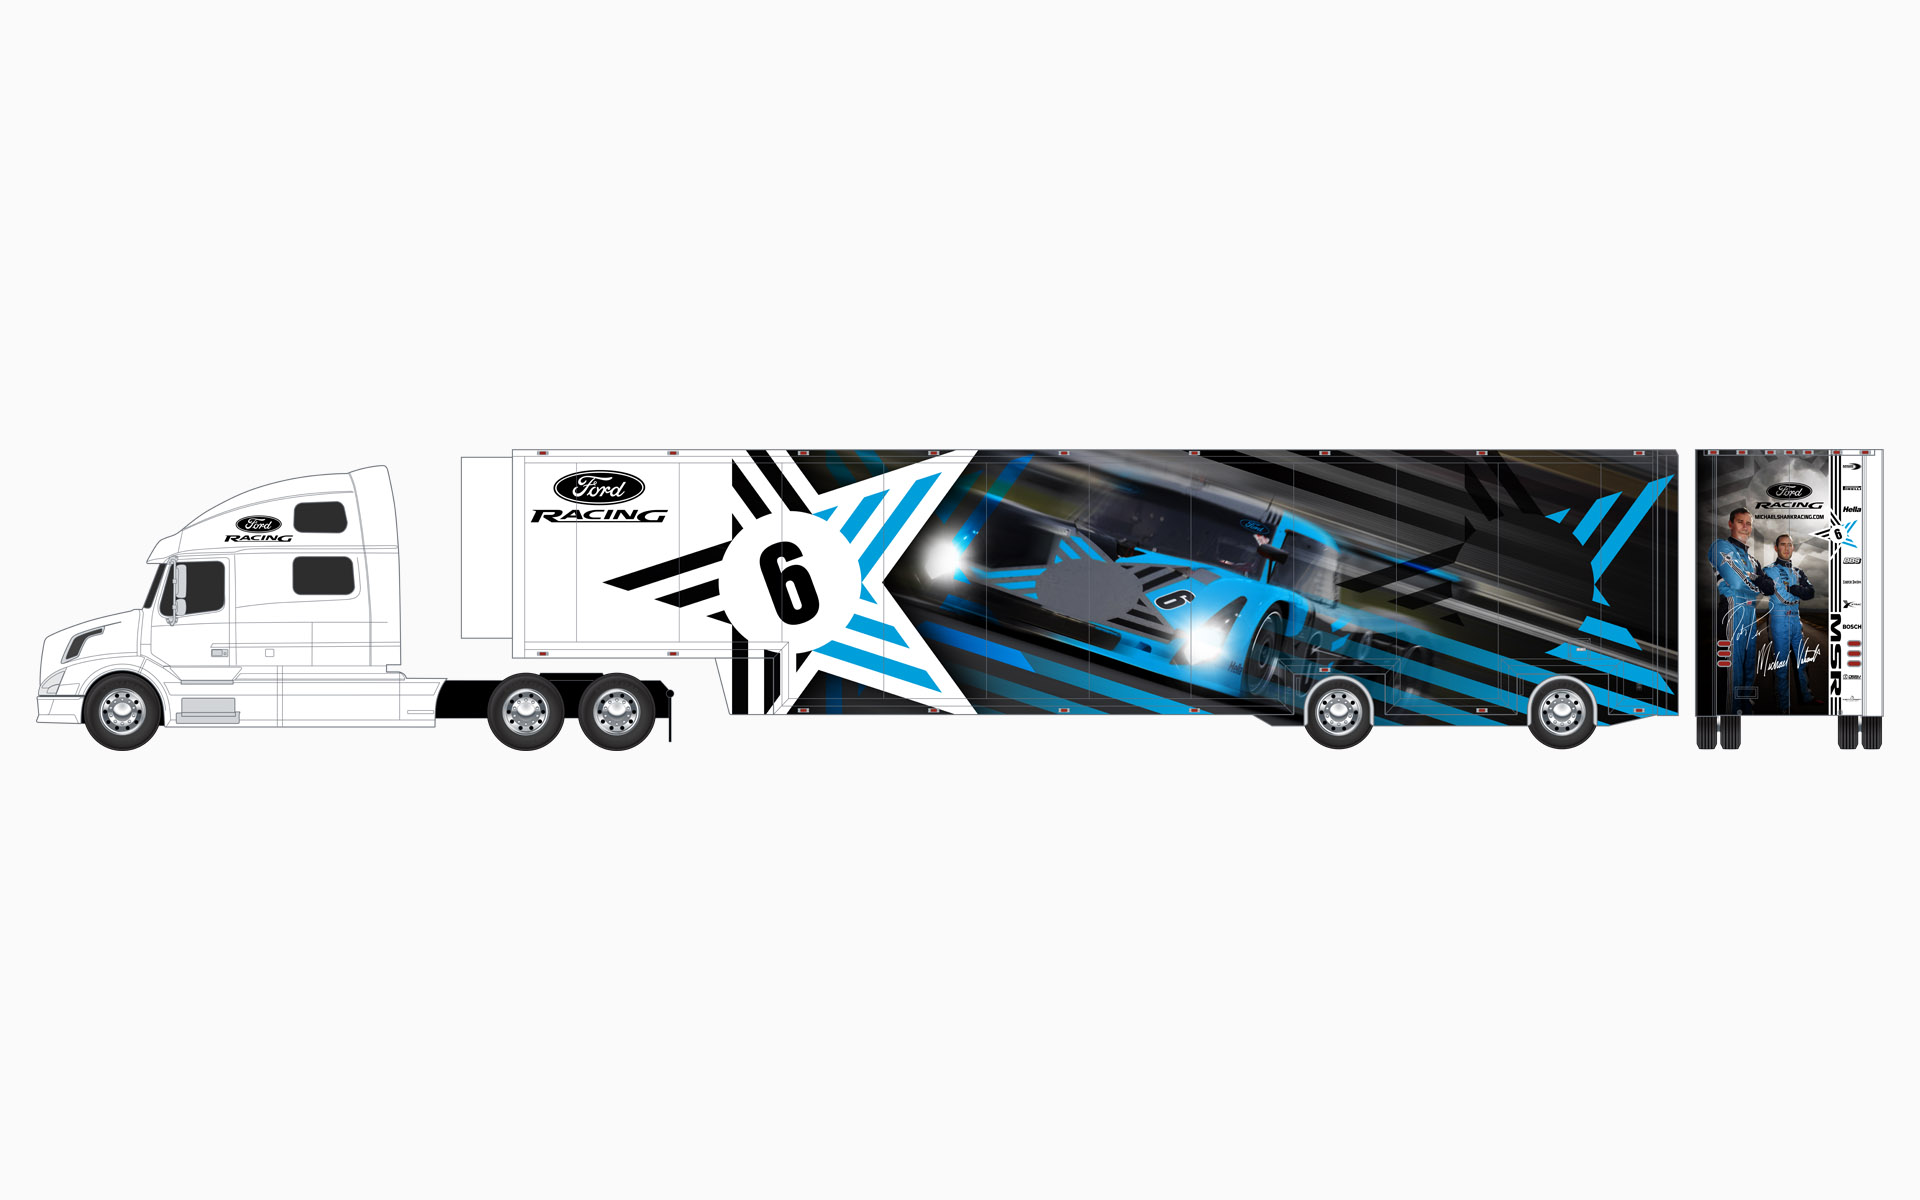 2006 Michael Shank Racing Transporter Livery Elevations